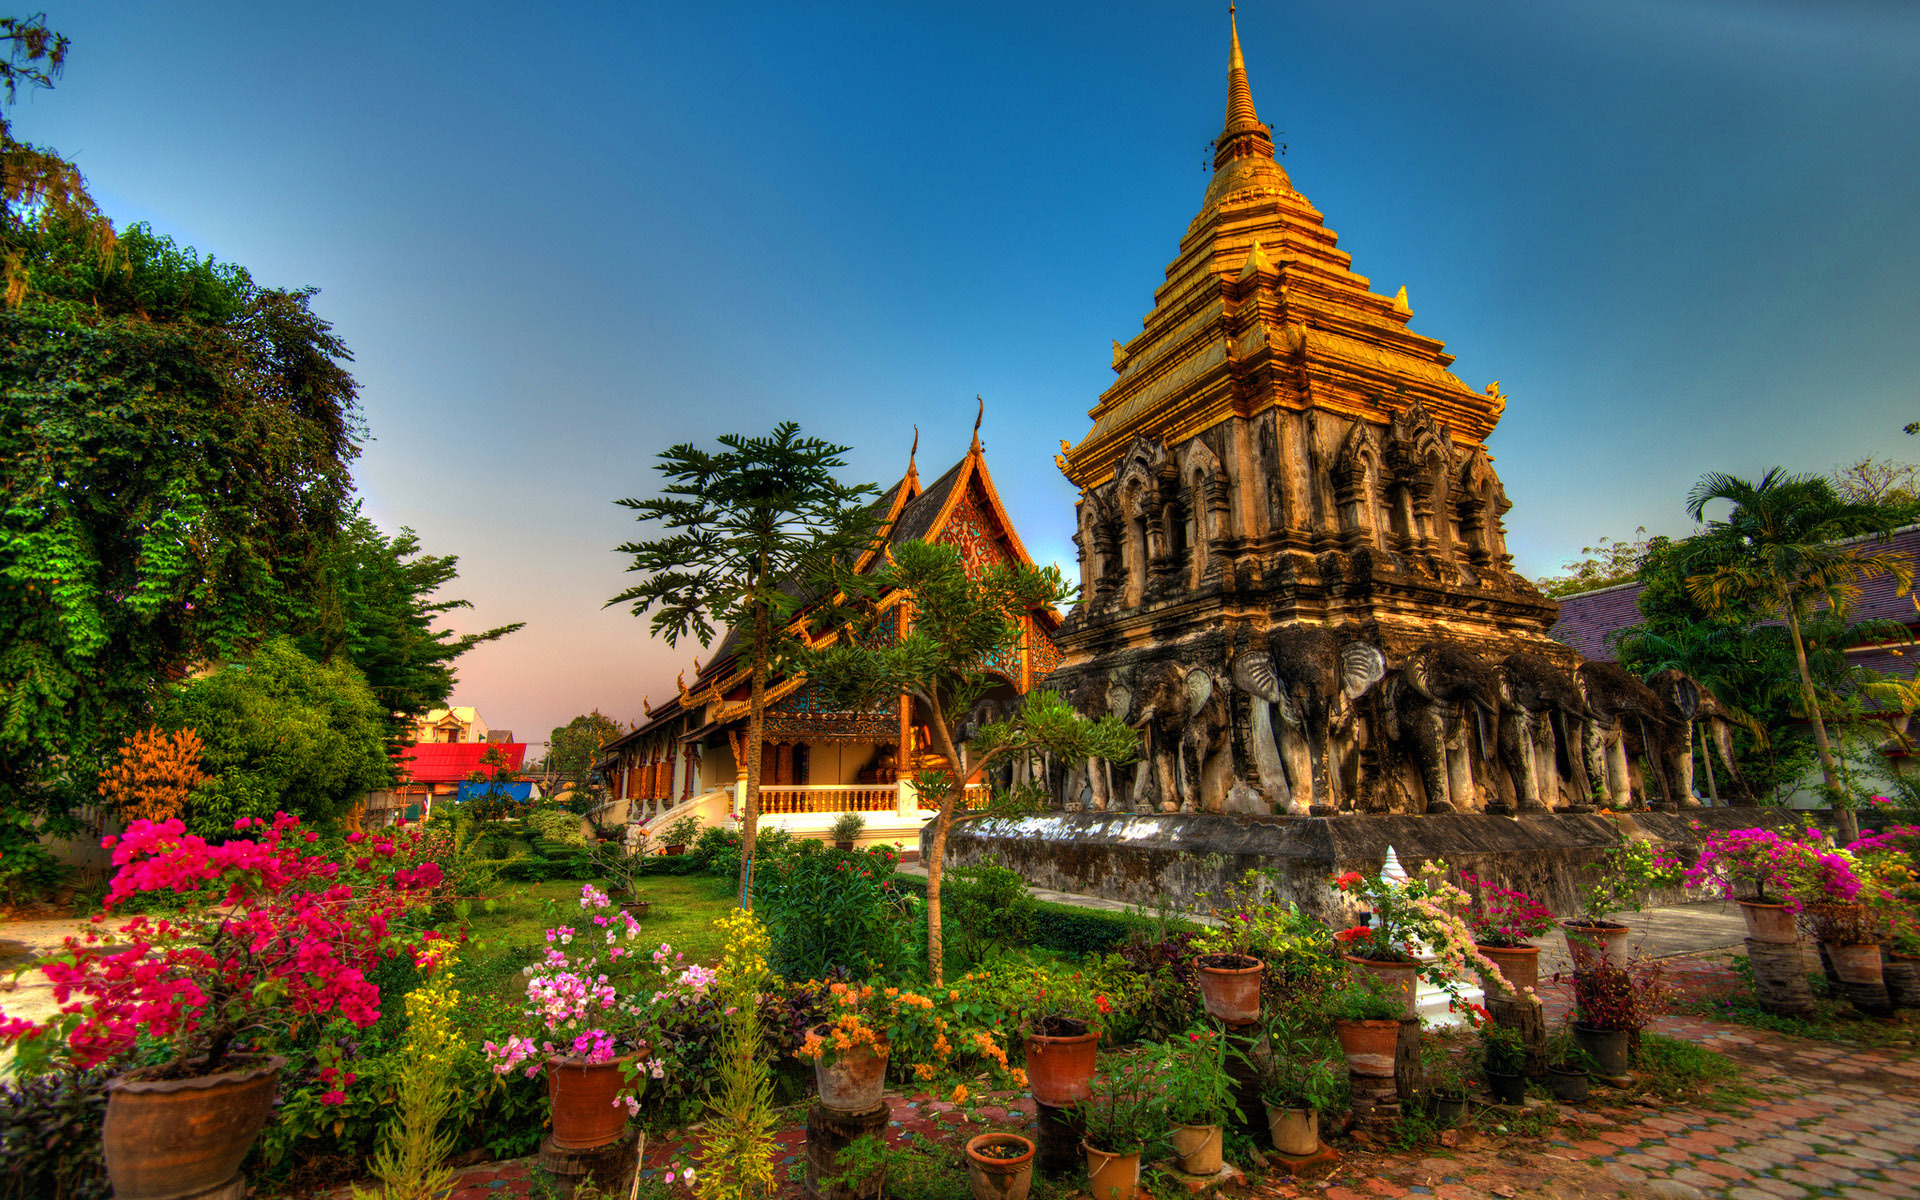 World___Thailand_Temple_complex_in_the_resort_of_Chiang_Mai__Thailand_061860_